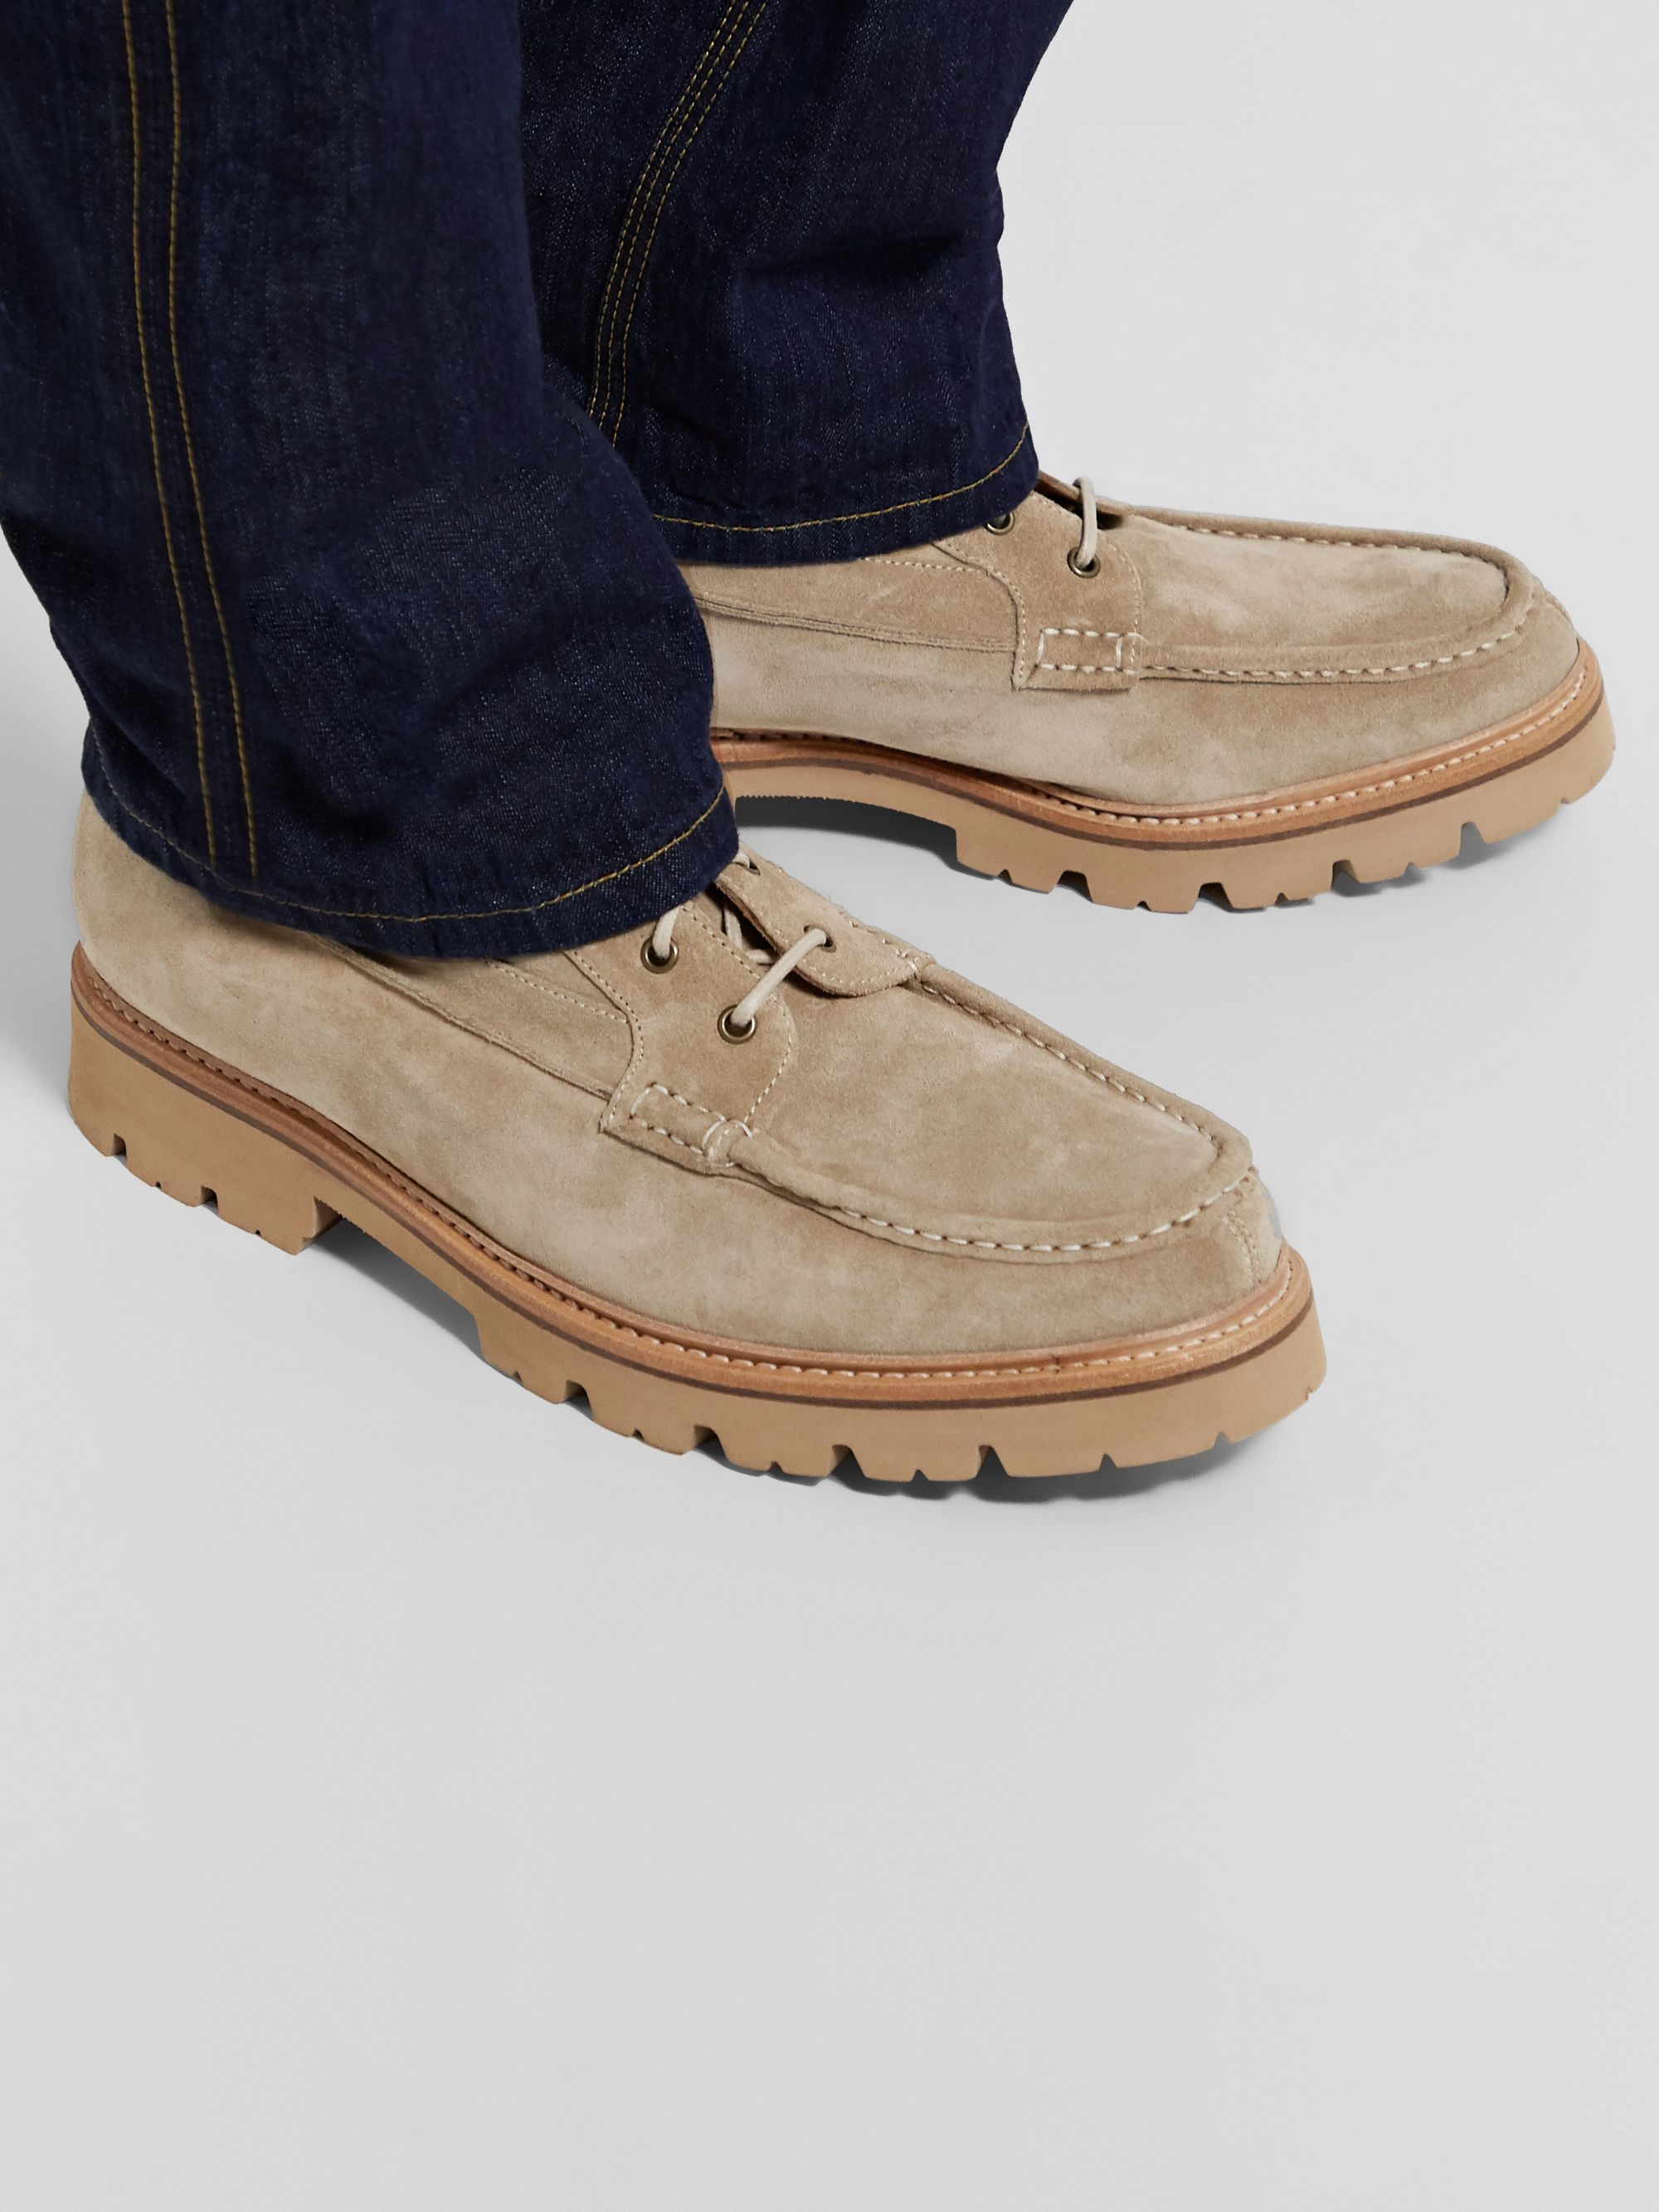 Grenson Rocco Suede Boots